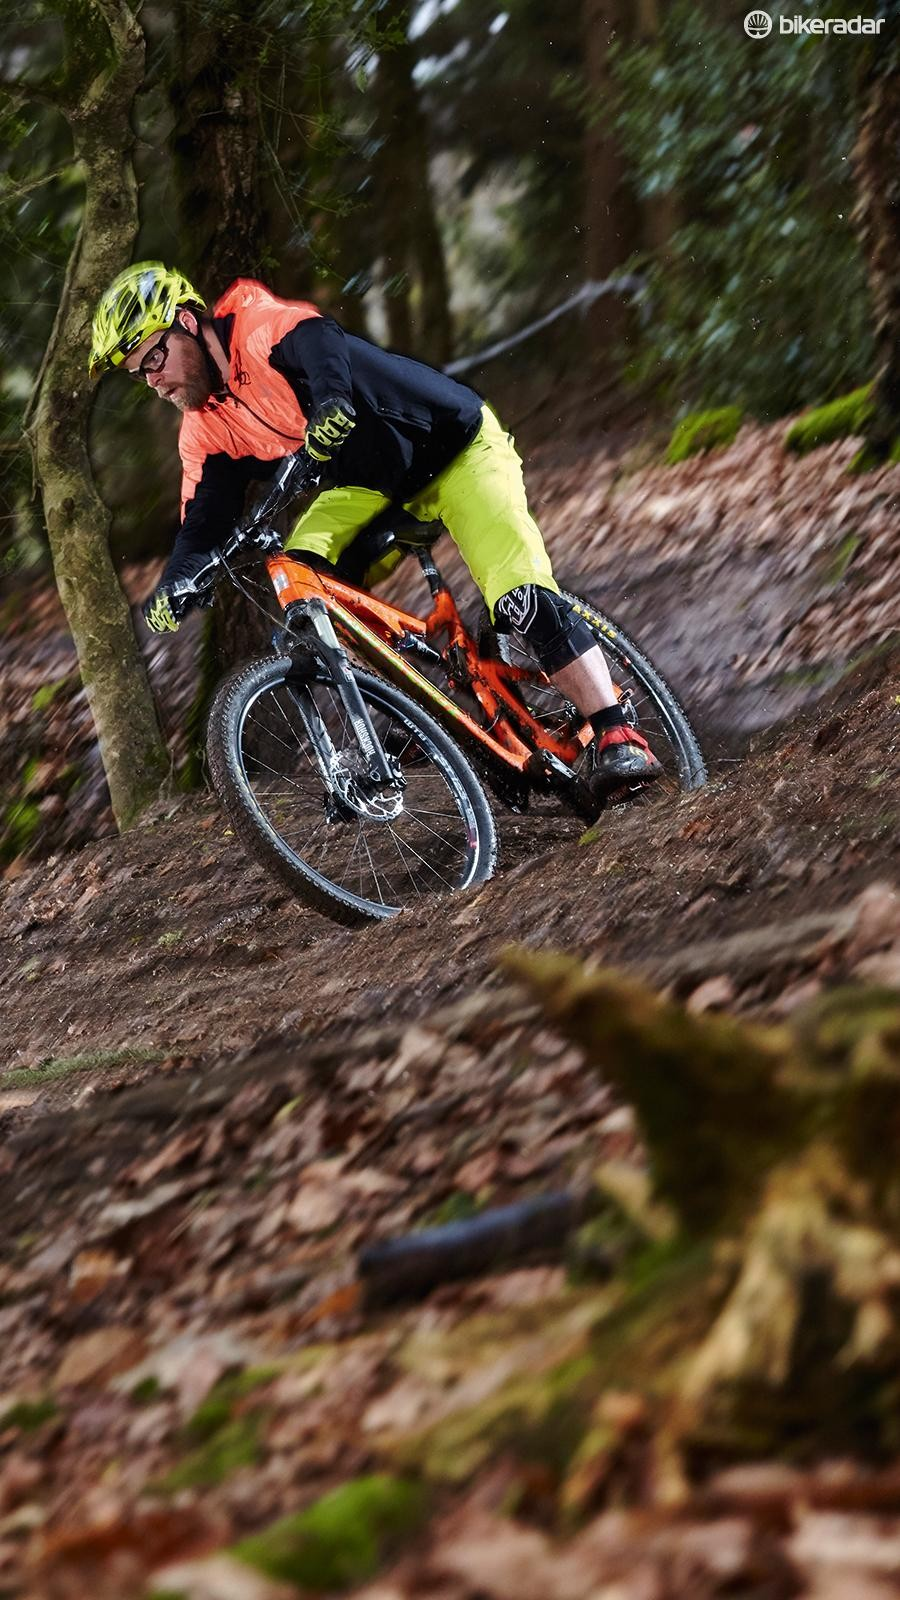 RockShox's Sektor teams up with tubeless Maxxis rubber for way more control than fork snobs would expect